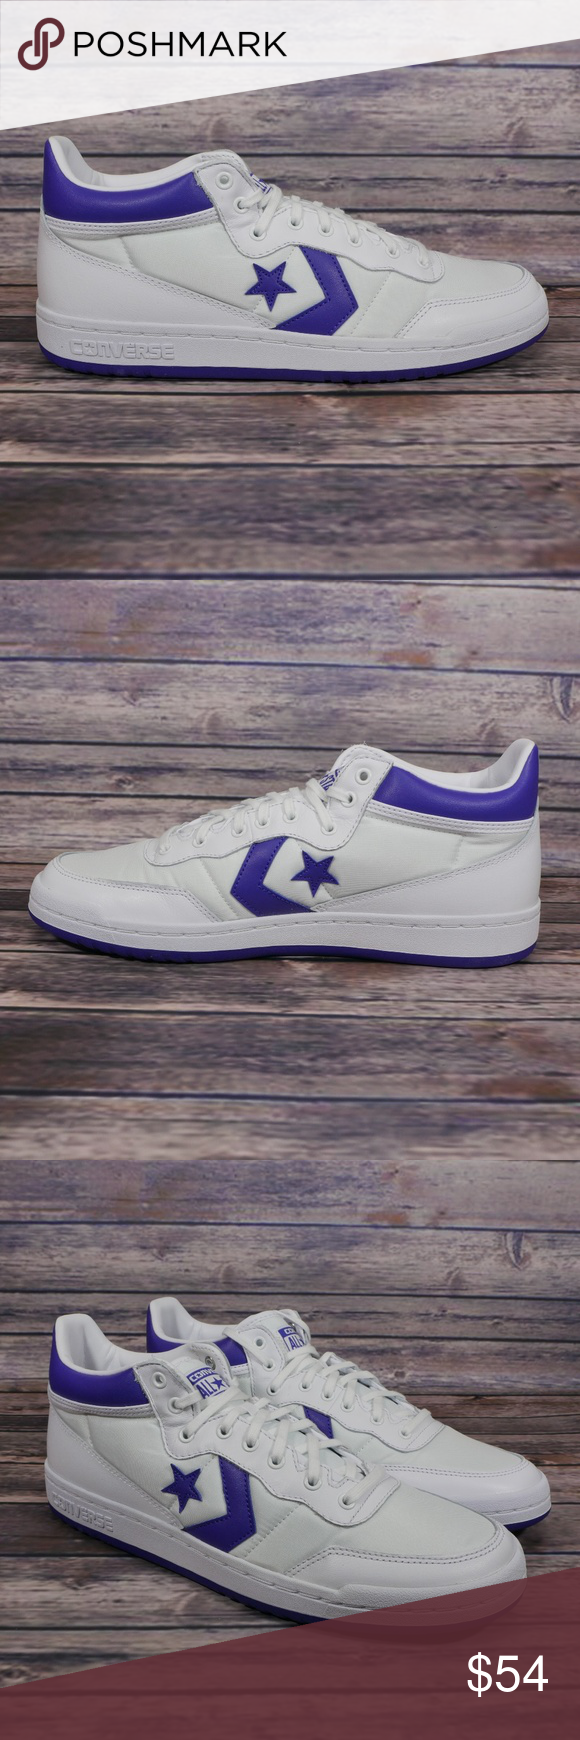 c5ae9b1b0d9b4c NEW Converse Fastbreak 83 Mid White Grape Sneaker Converse Fastbreak 83 Mid  White Grape Sneakers With Lunarlon 156972C Mens Sz 10.5 M. New without box.